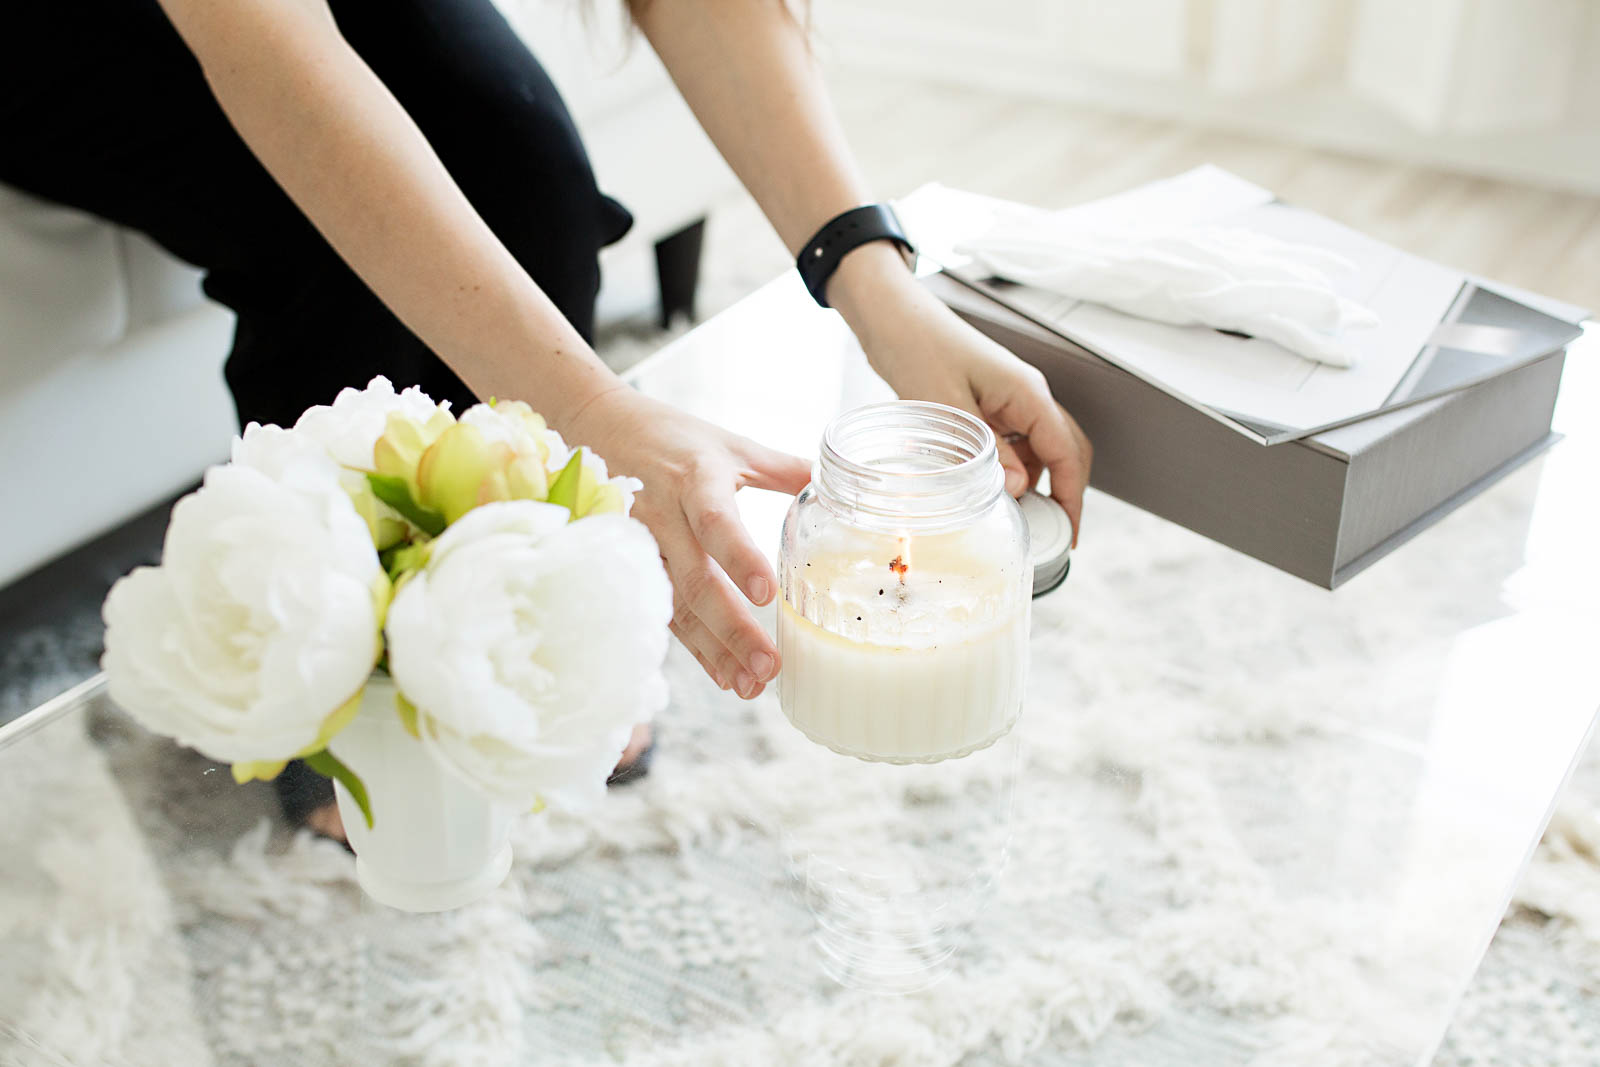 Image of Nataliya Lalor preparing her studio for a family by lighting a candle and setting out flowers. Photo taken in N. Lalor Photography in Greenwich, Connecticut.